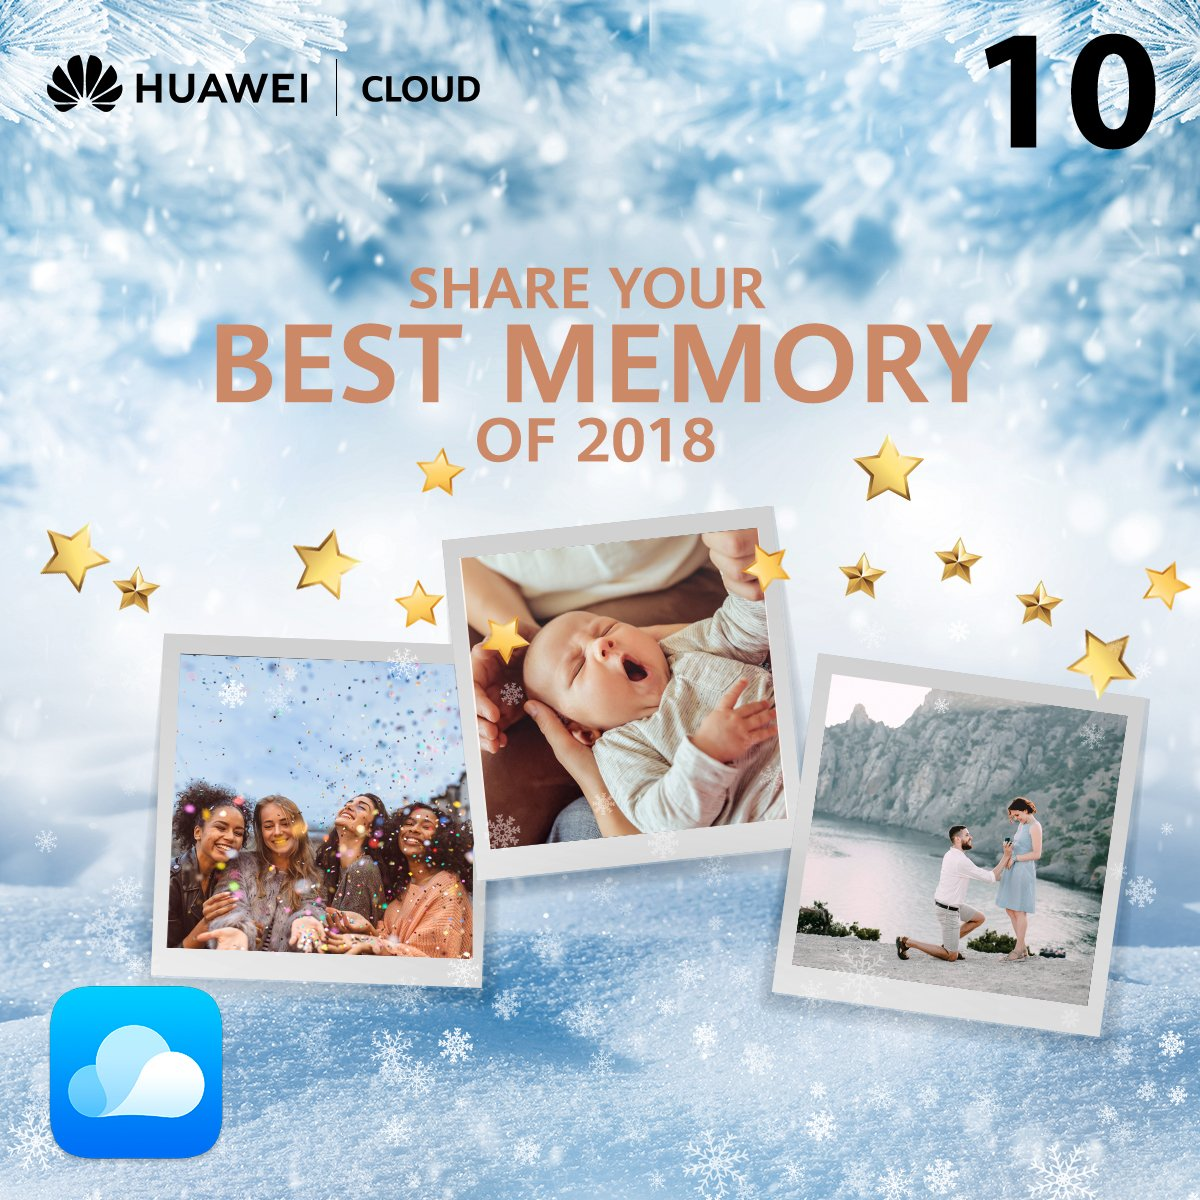 HuaweiMobileServices on Twitter: